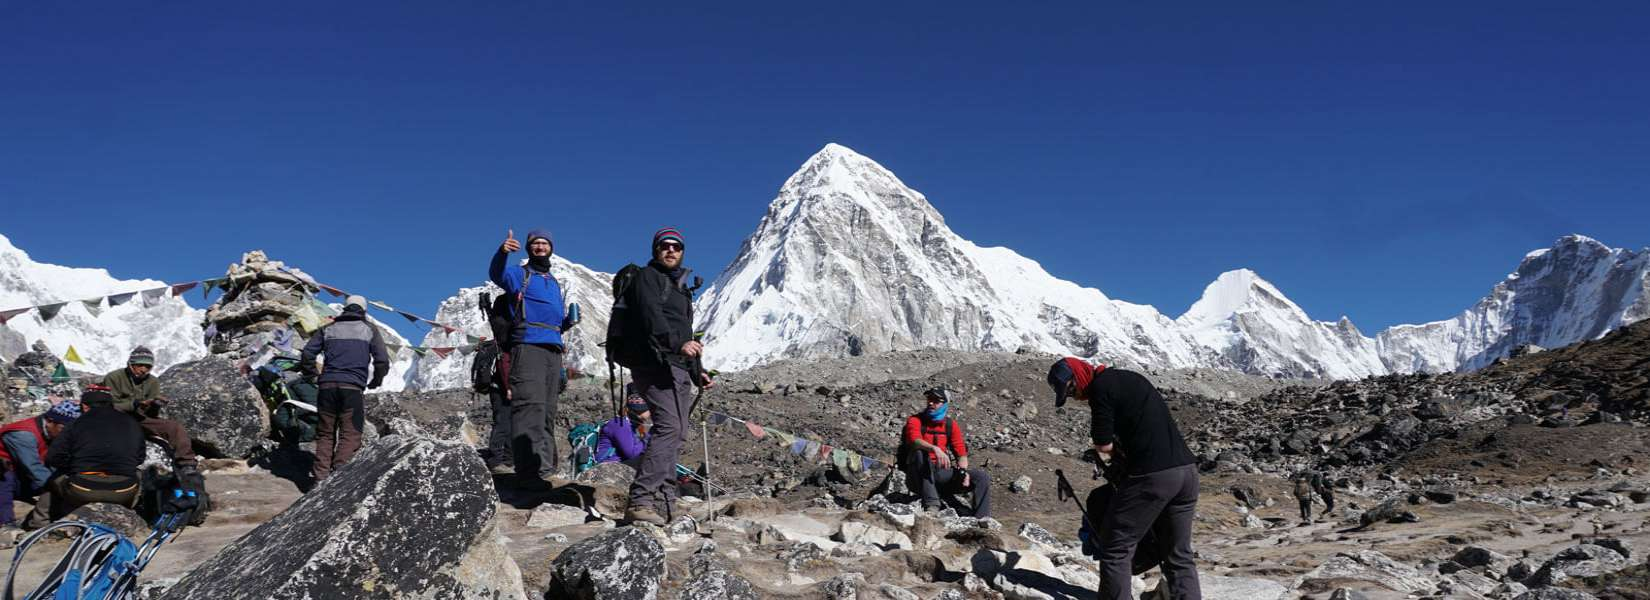 High Altitude Sickness in Nepal